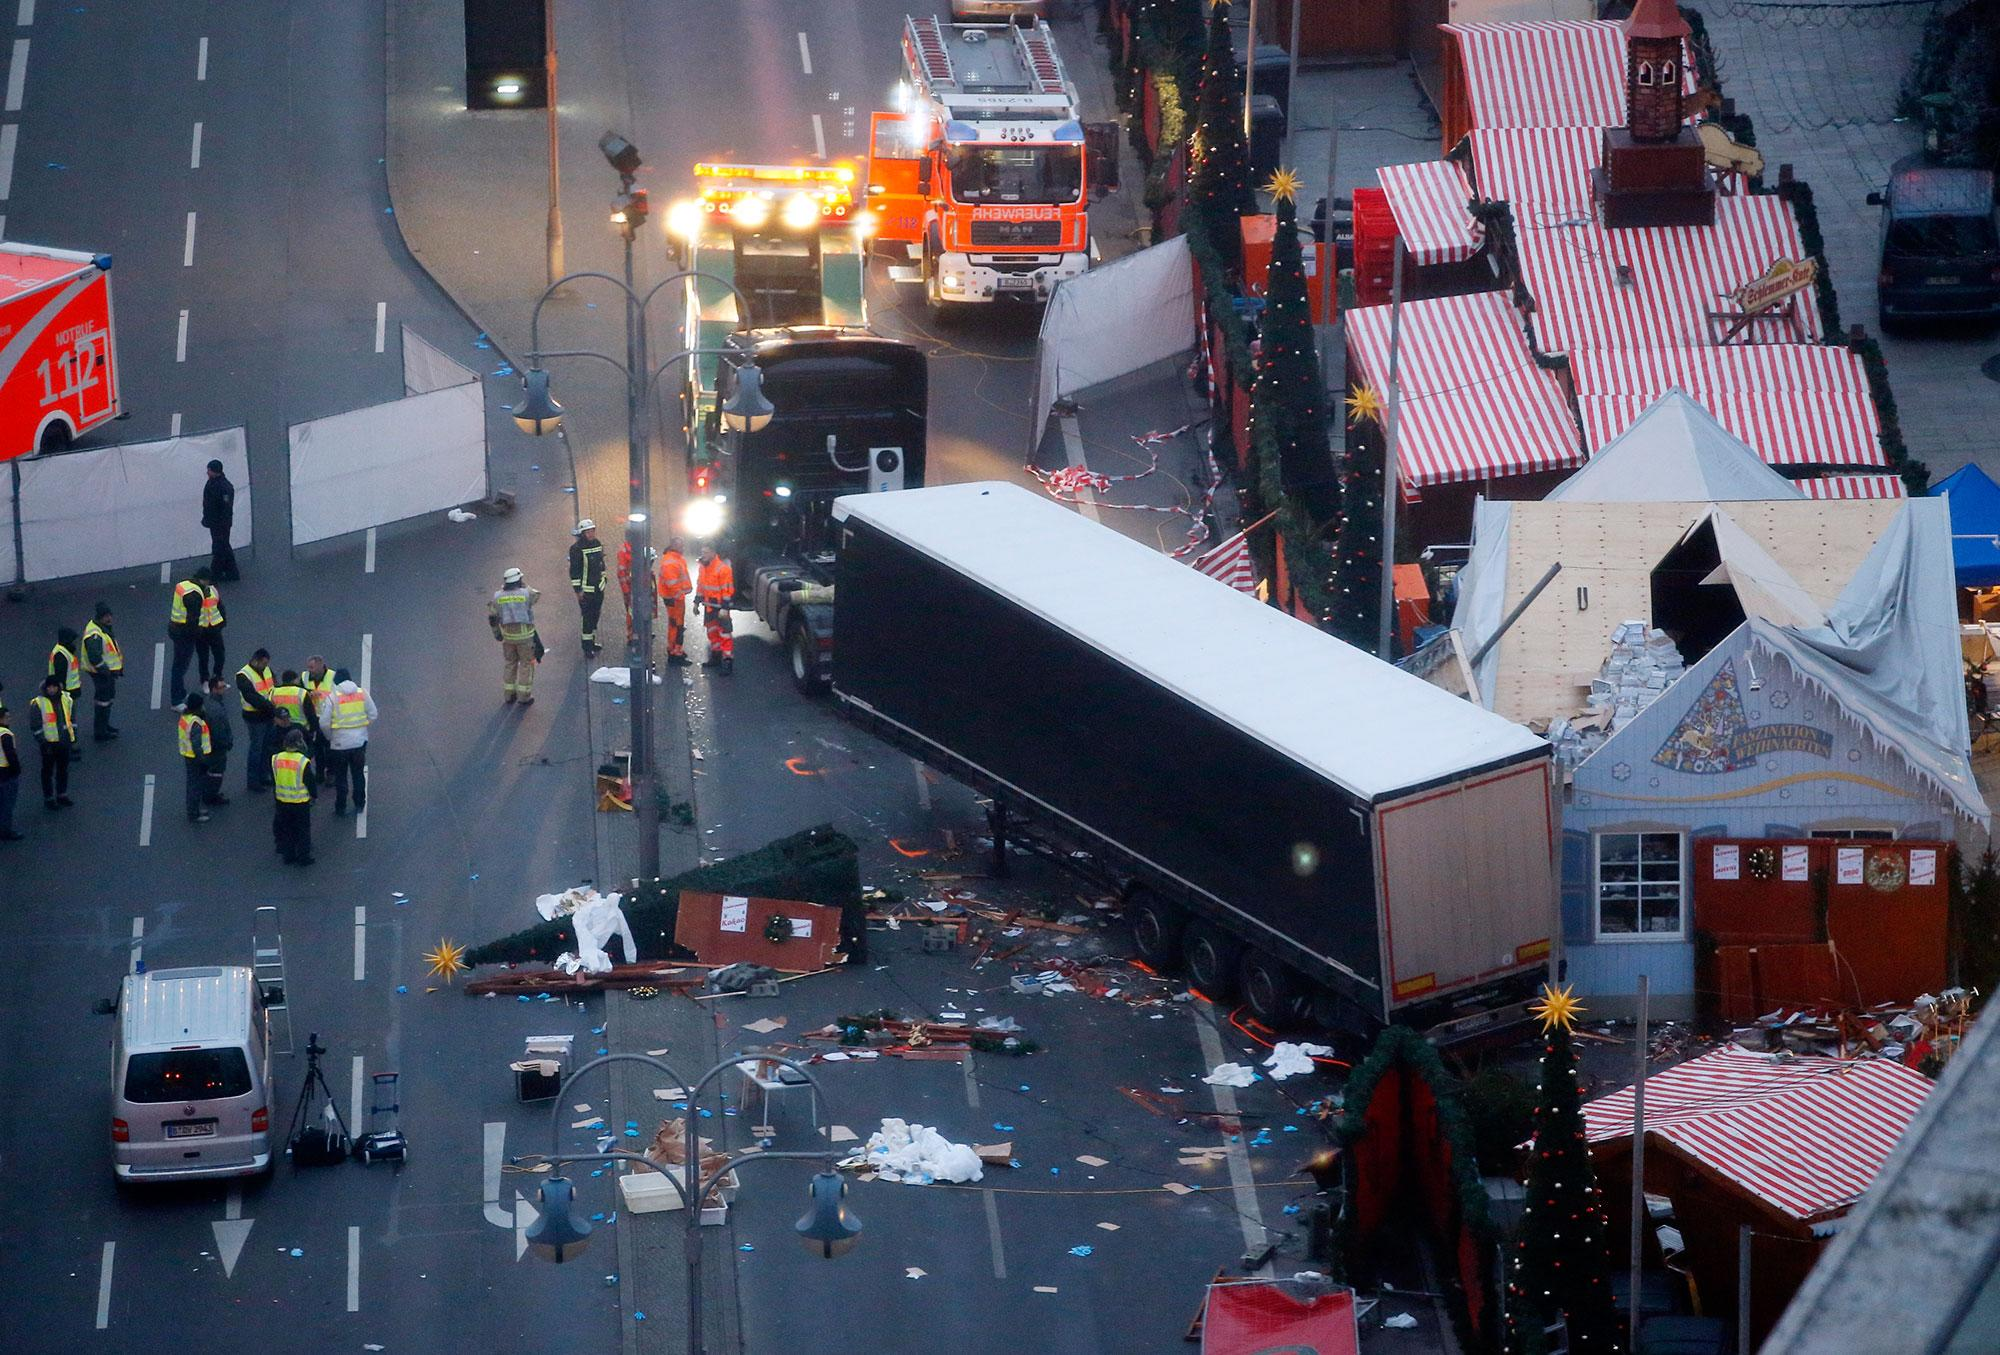 <p>A tow truck operates at the scene where a truck ploughed through a crowd at a Christmas market on Breitscheidplatz square near the fashionable Kurfuerstendamm avenue in the west of Berlin, Germany on Dec. 20, 2016. (Fabrizio Bensch/Reuters) </p>